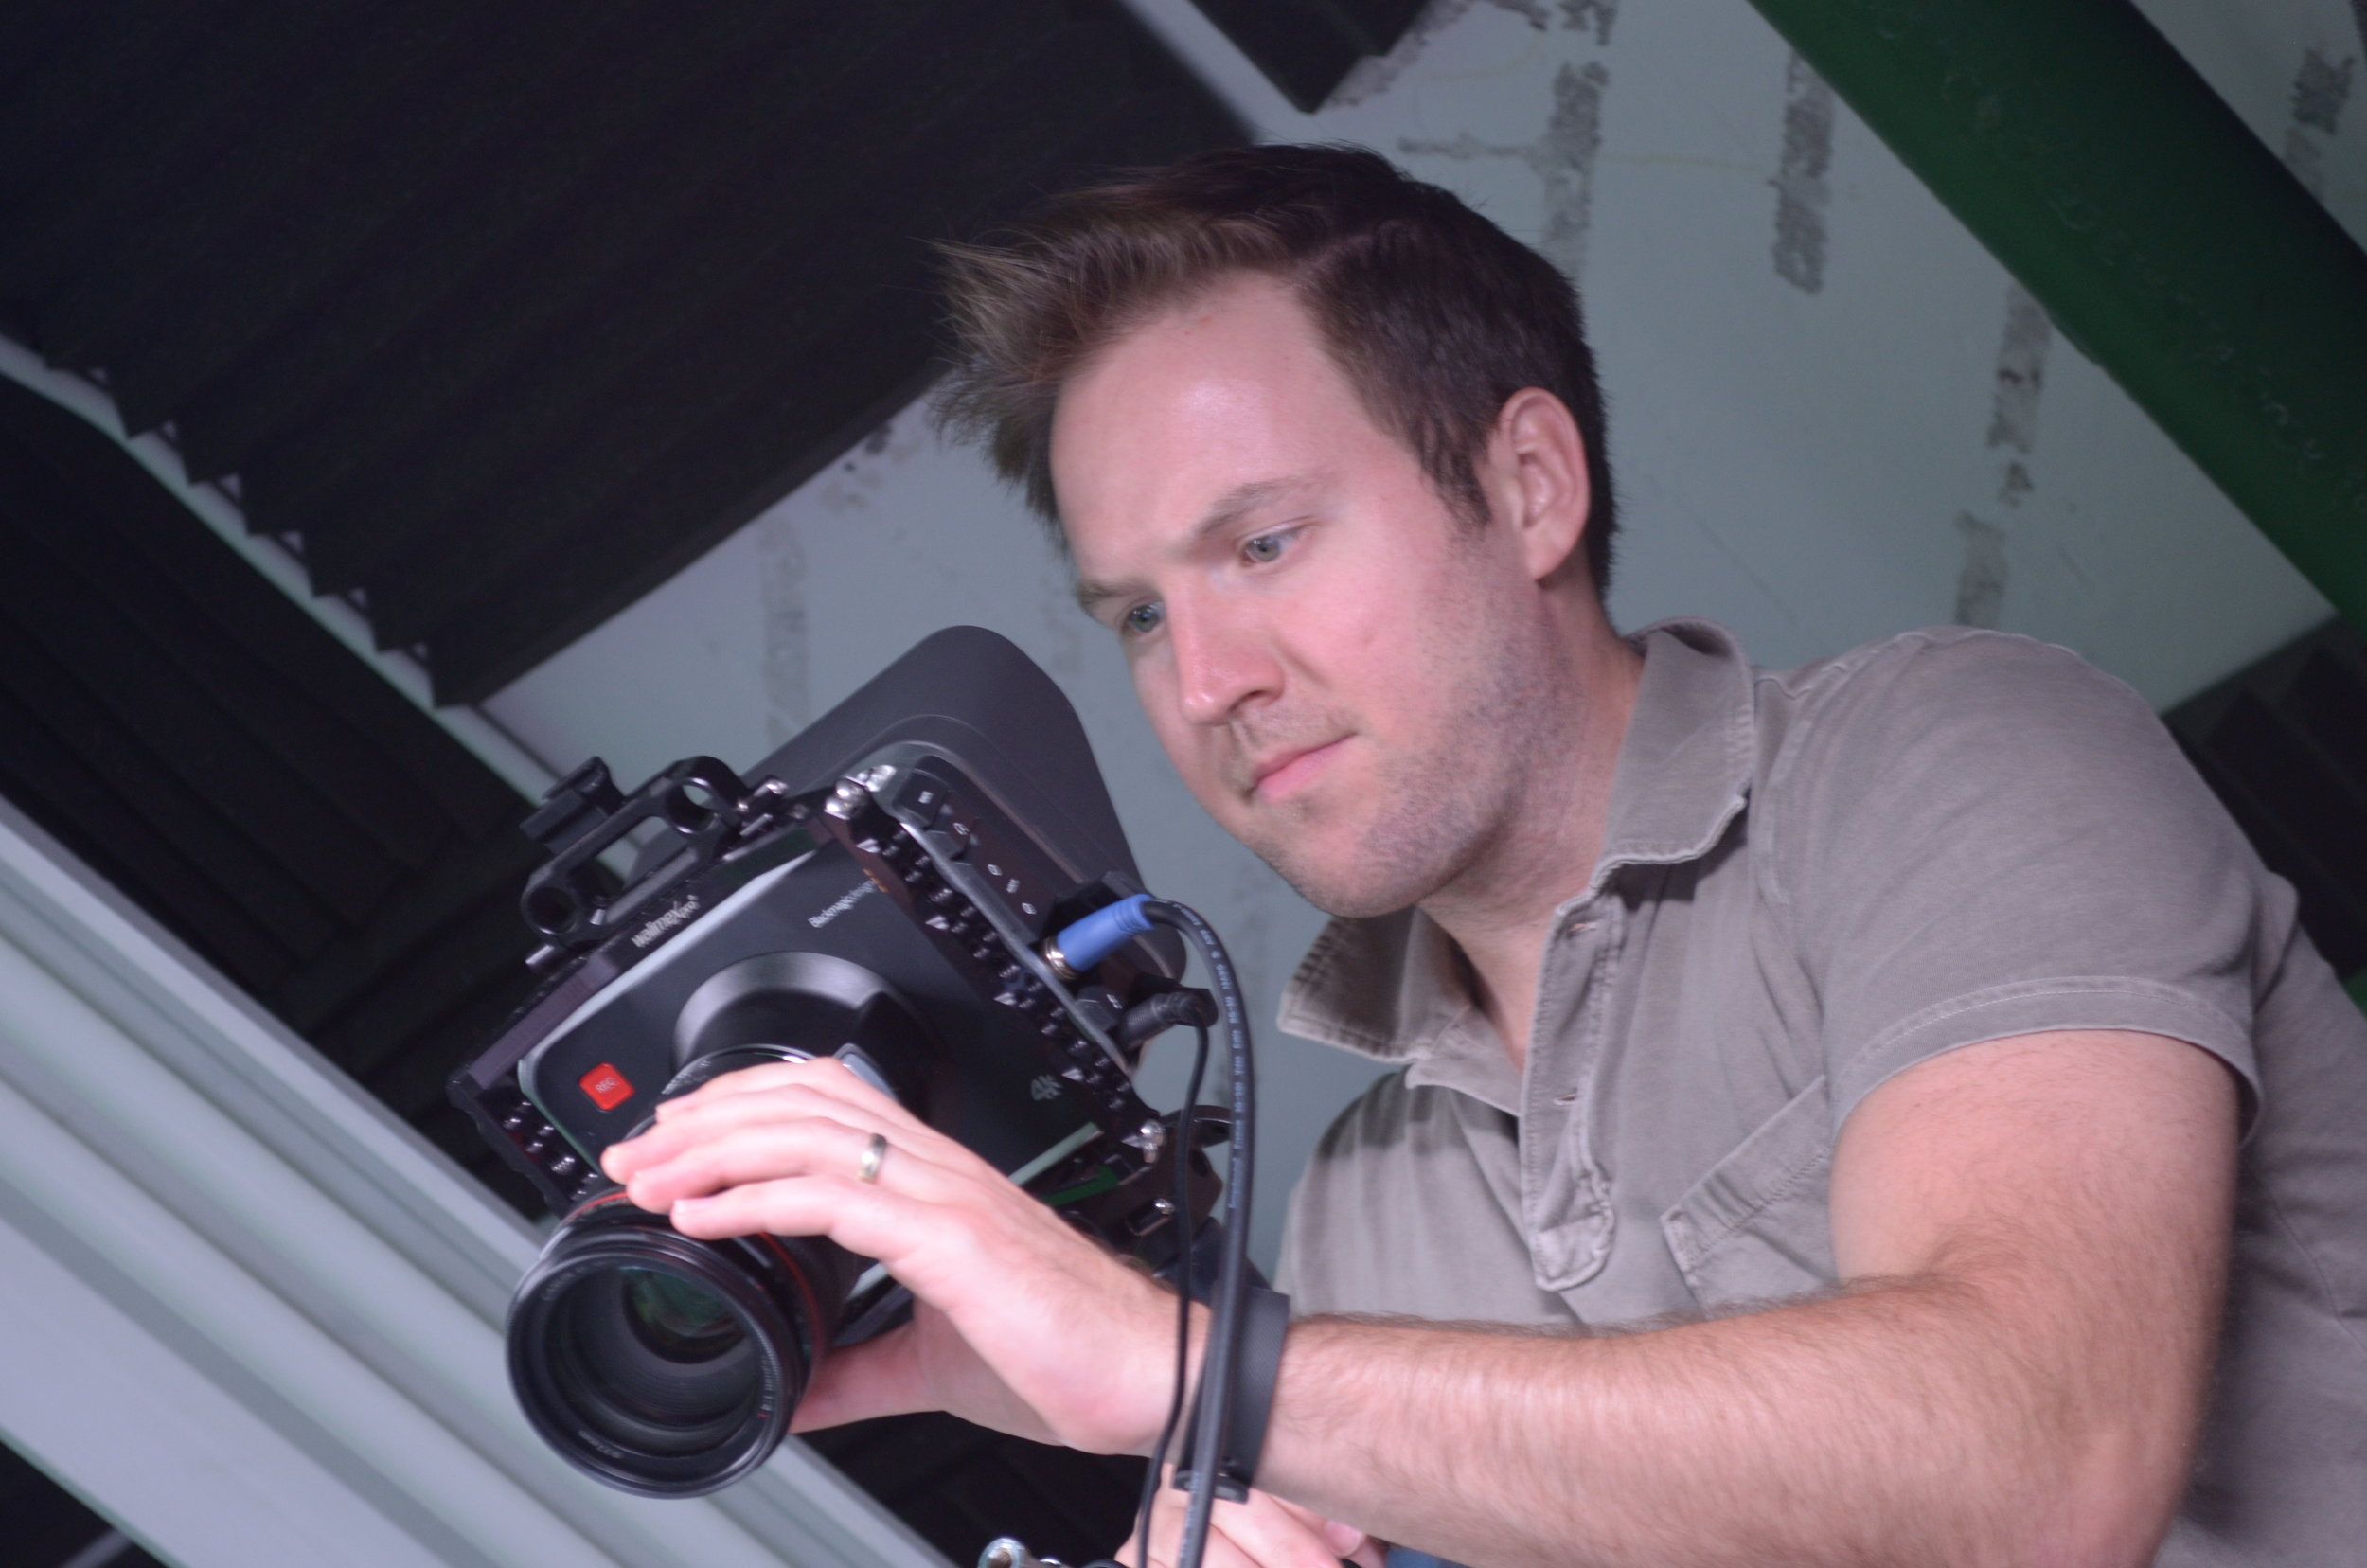 Ryan Geiger behind camera